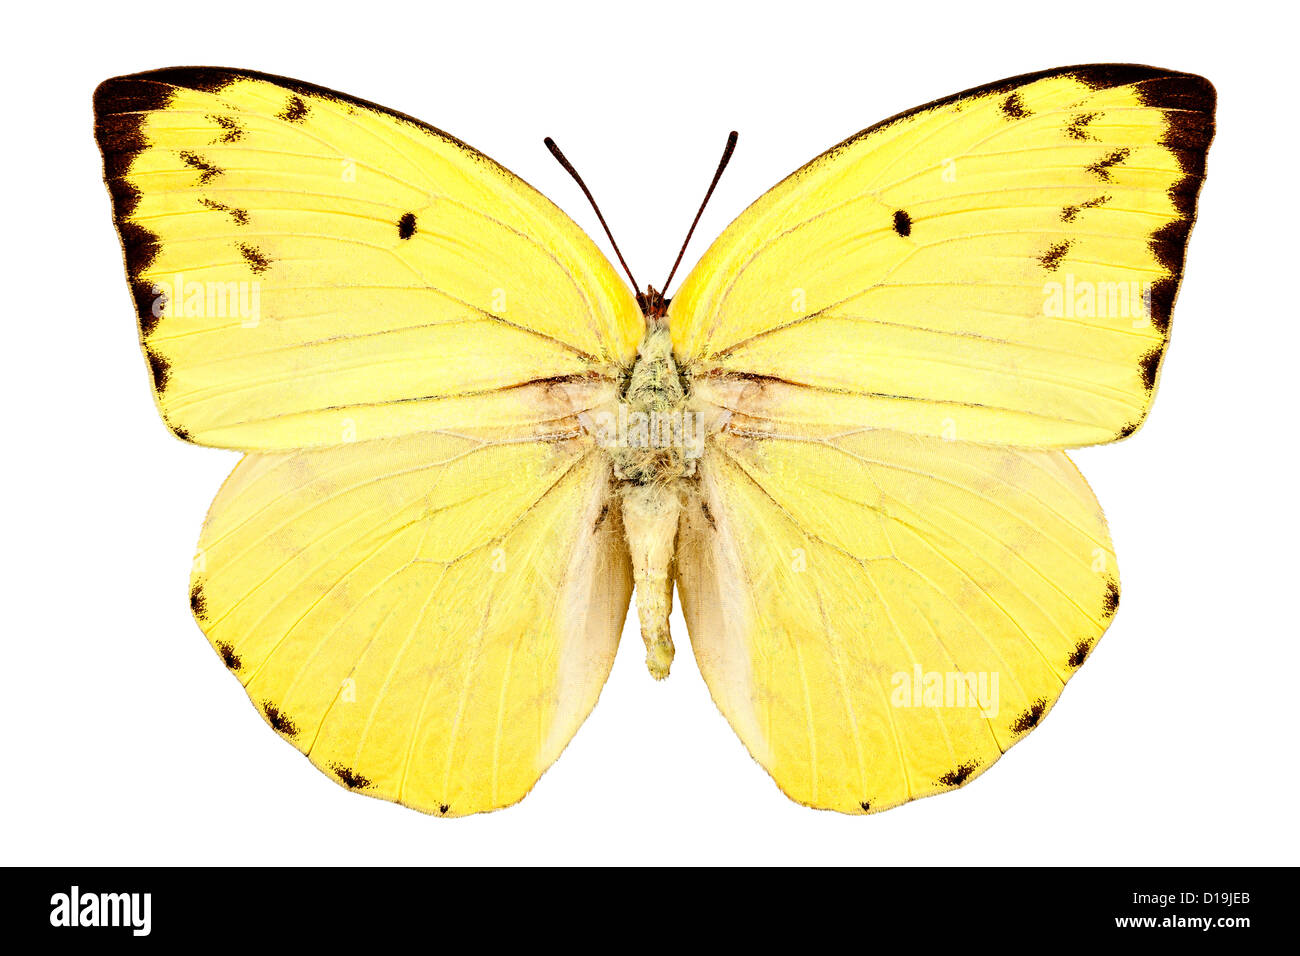 Butterfly species Catopsilia pomona pomona 'Lemon Emigrant' - Stock Image